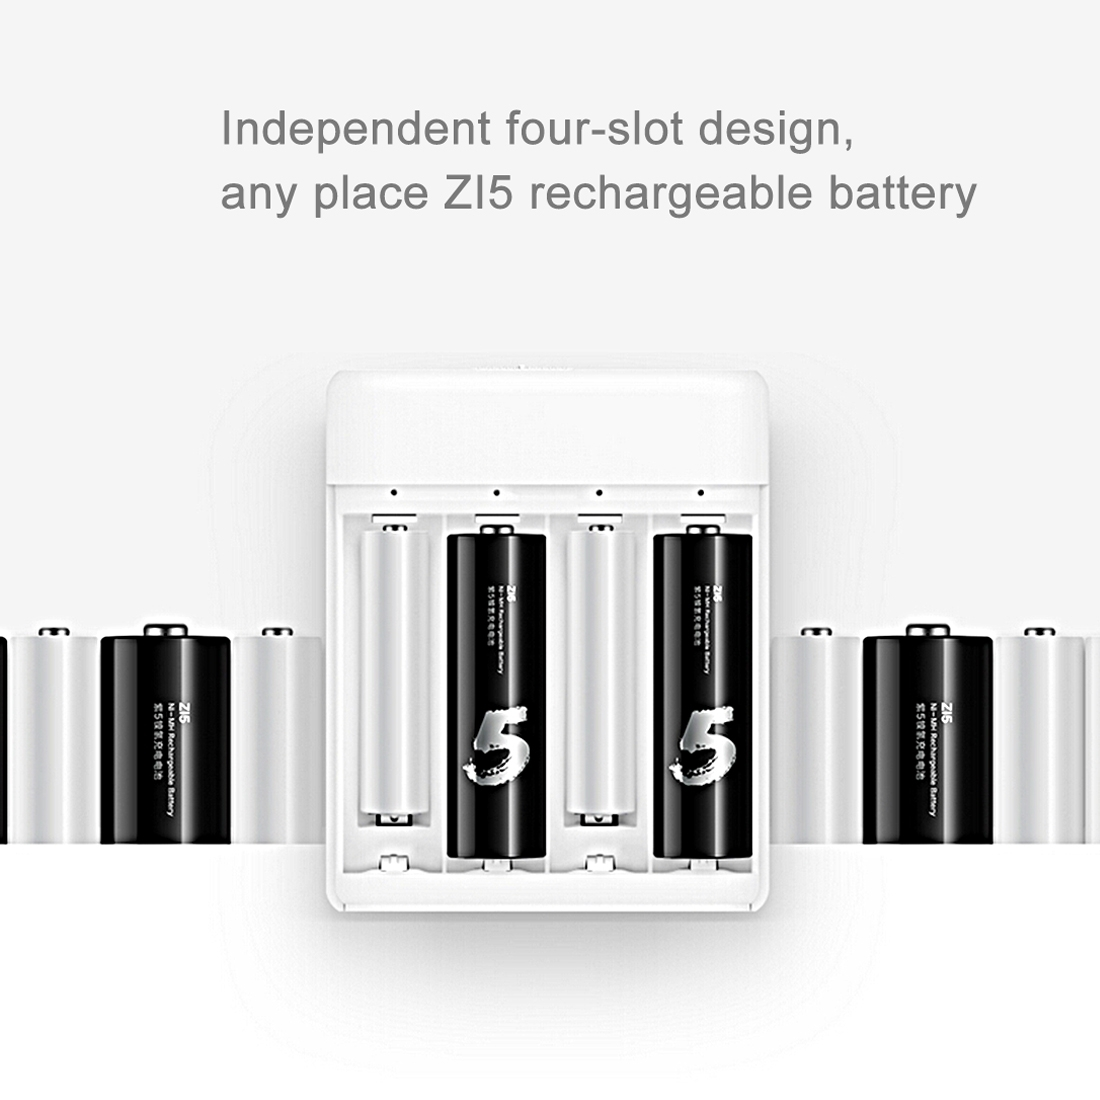 New Original Xiaomi Z15 Z17 4slots Rapid Smart Mini NI-MH AA AAA Battery Charger